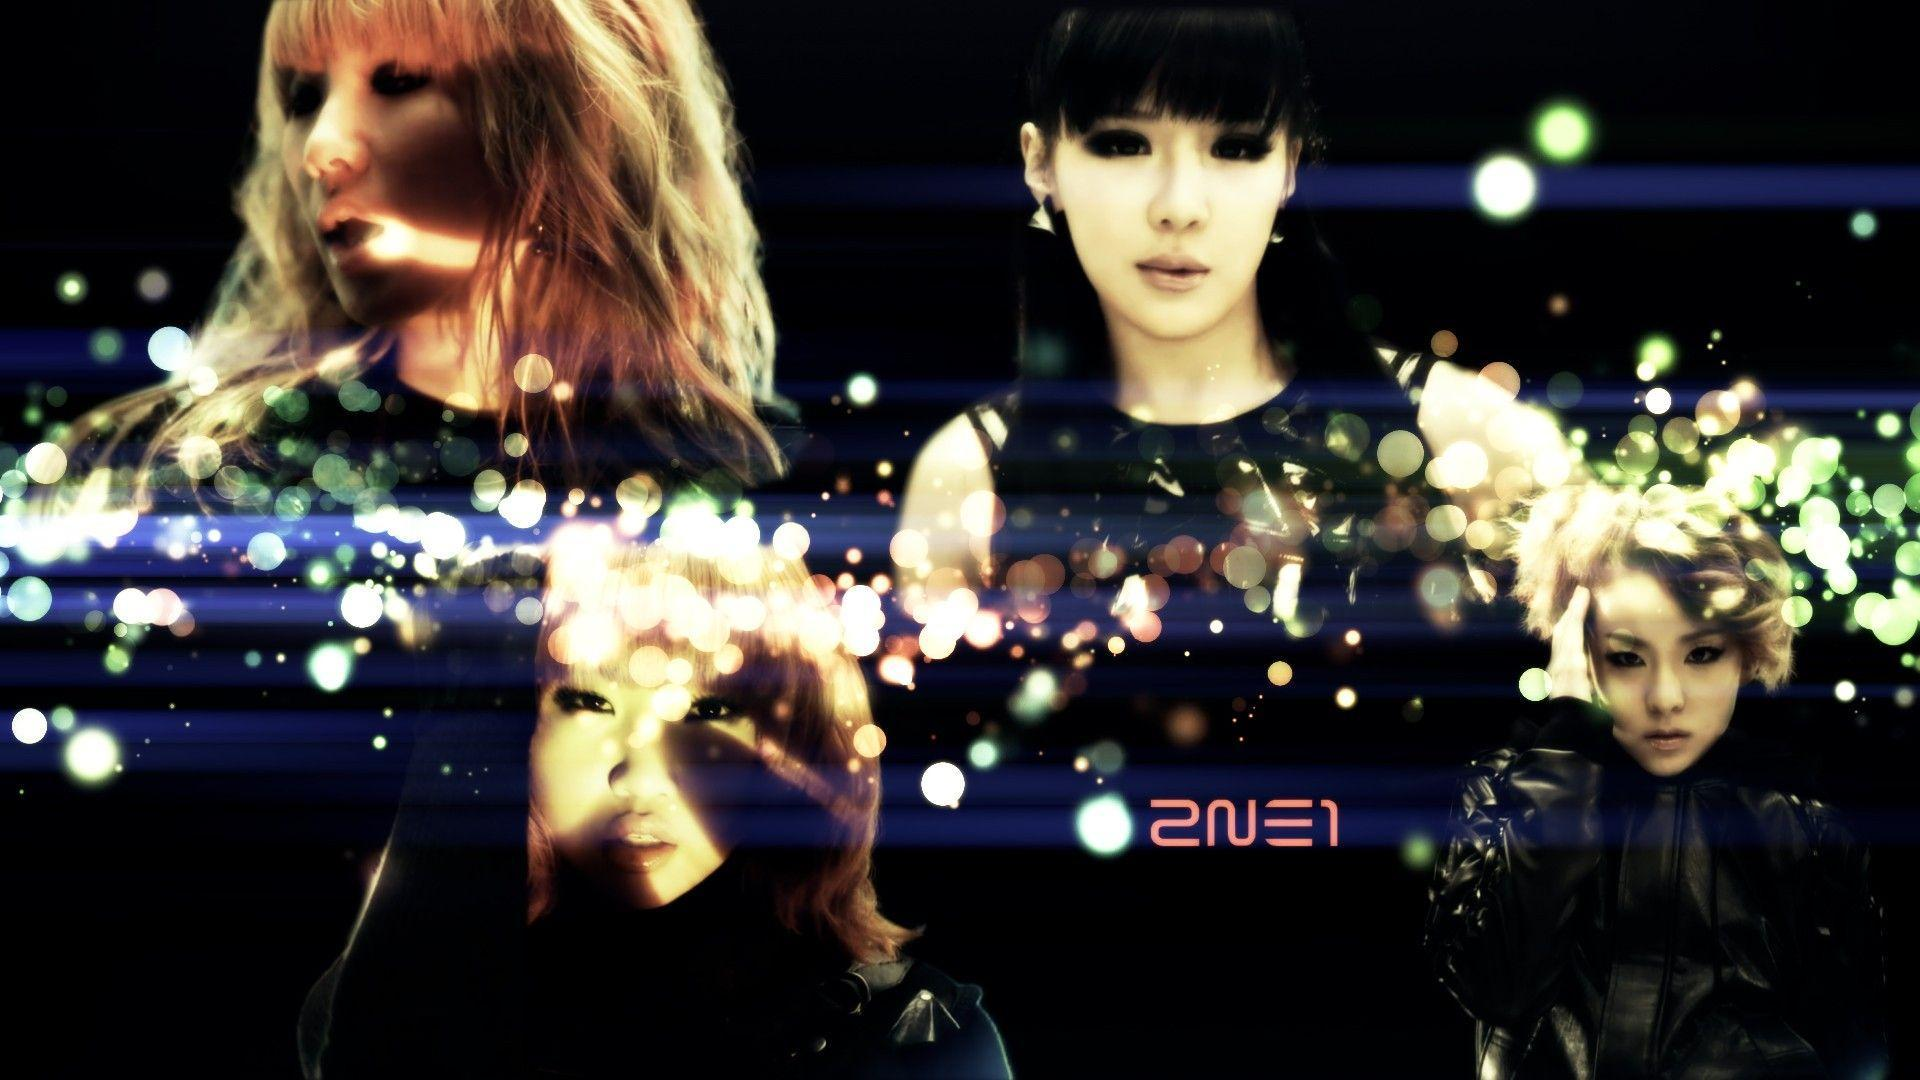 2ne1 2015 Wallpapers